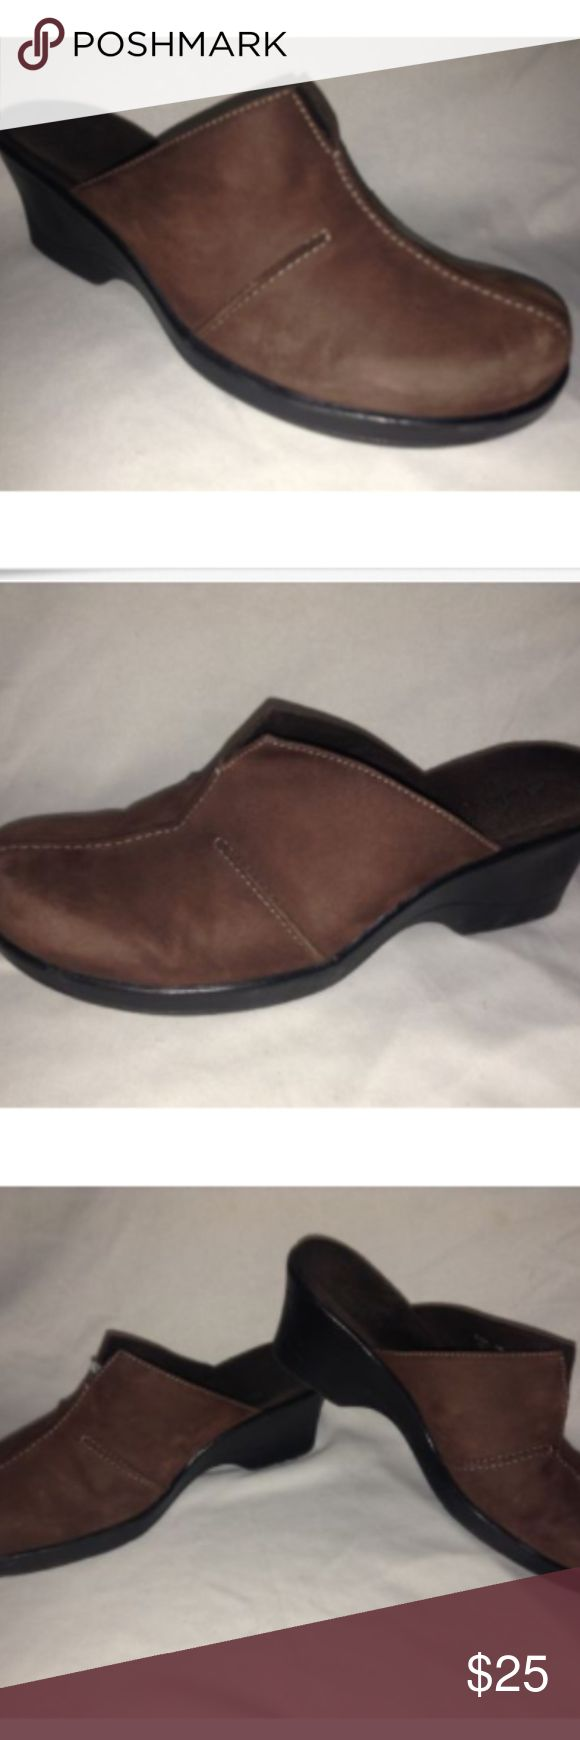 "Clarks Nubuck Suede Leather Mule Woman 7 M Clarks ""Delight"" Nubuck Suede Wine Leather Clog Mules 7 M  Faith makes all things possible, Hope makes all things work, Love makes all things beautiful Clarks Shoes Mules & Clogs"